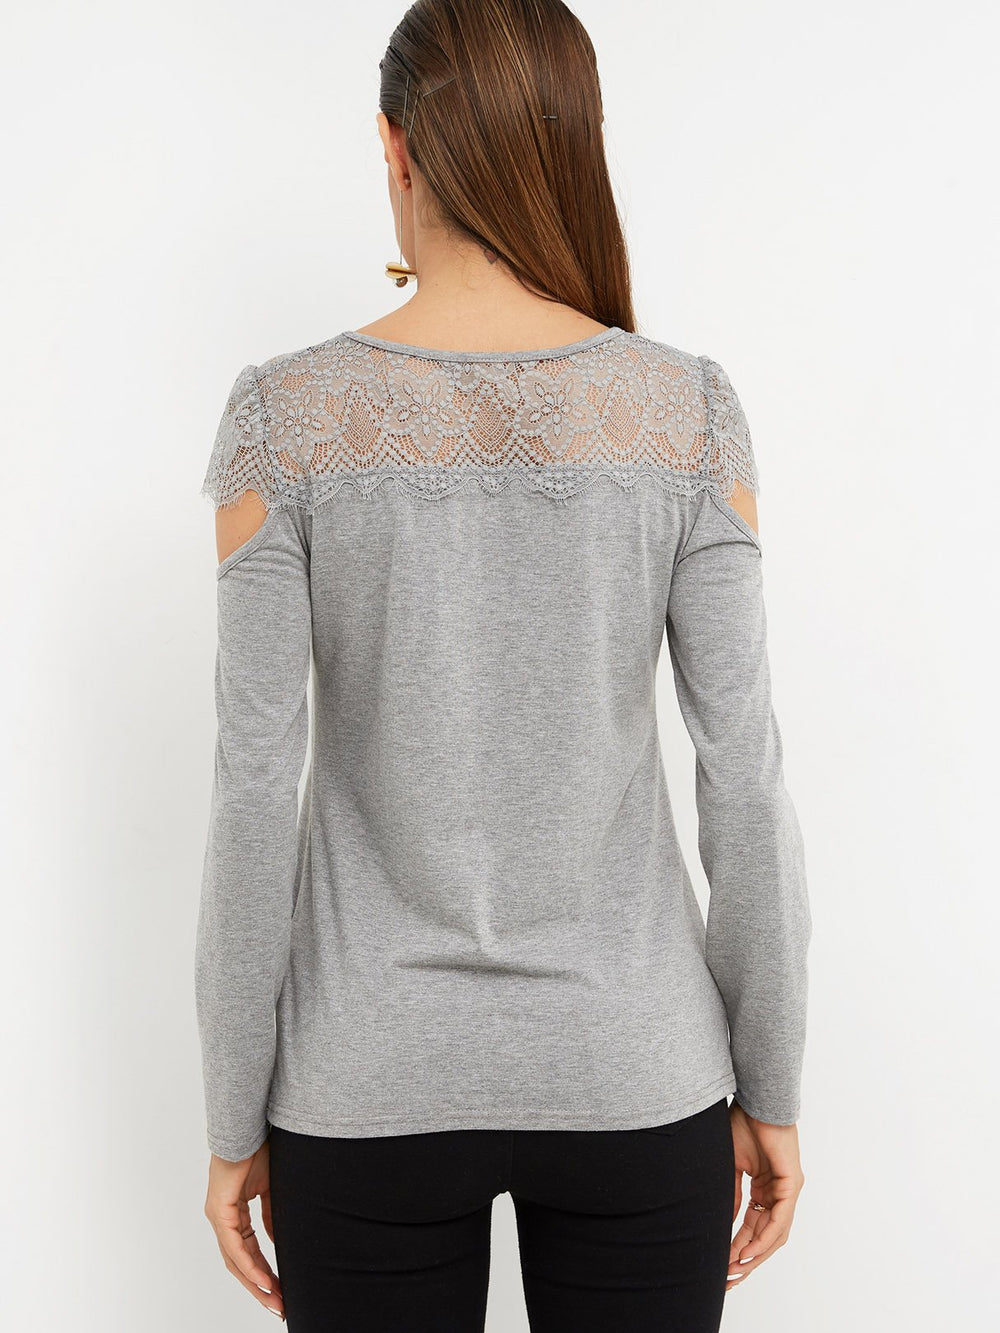 Womens Grey T-Shirts